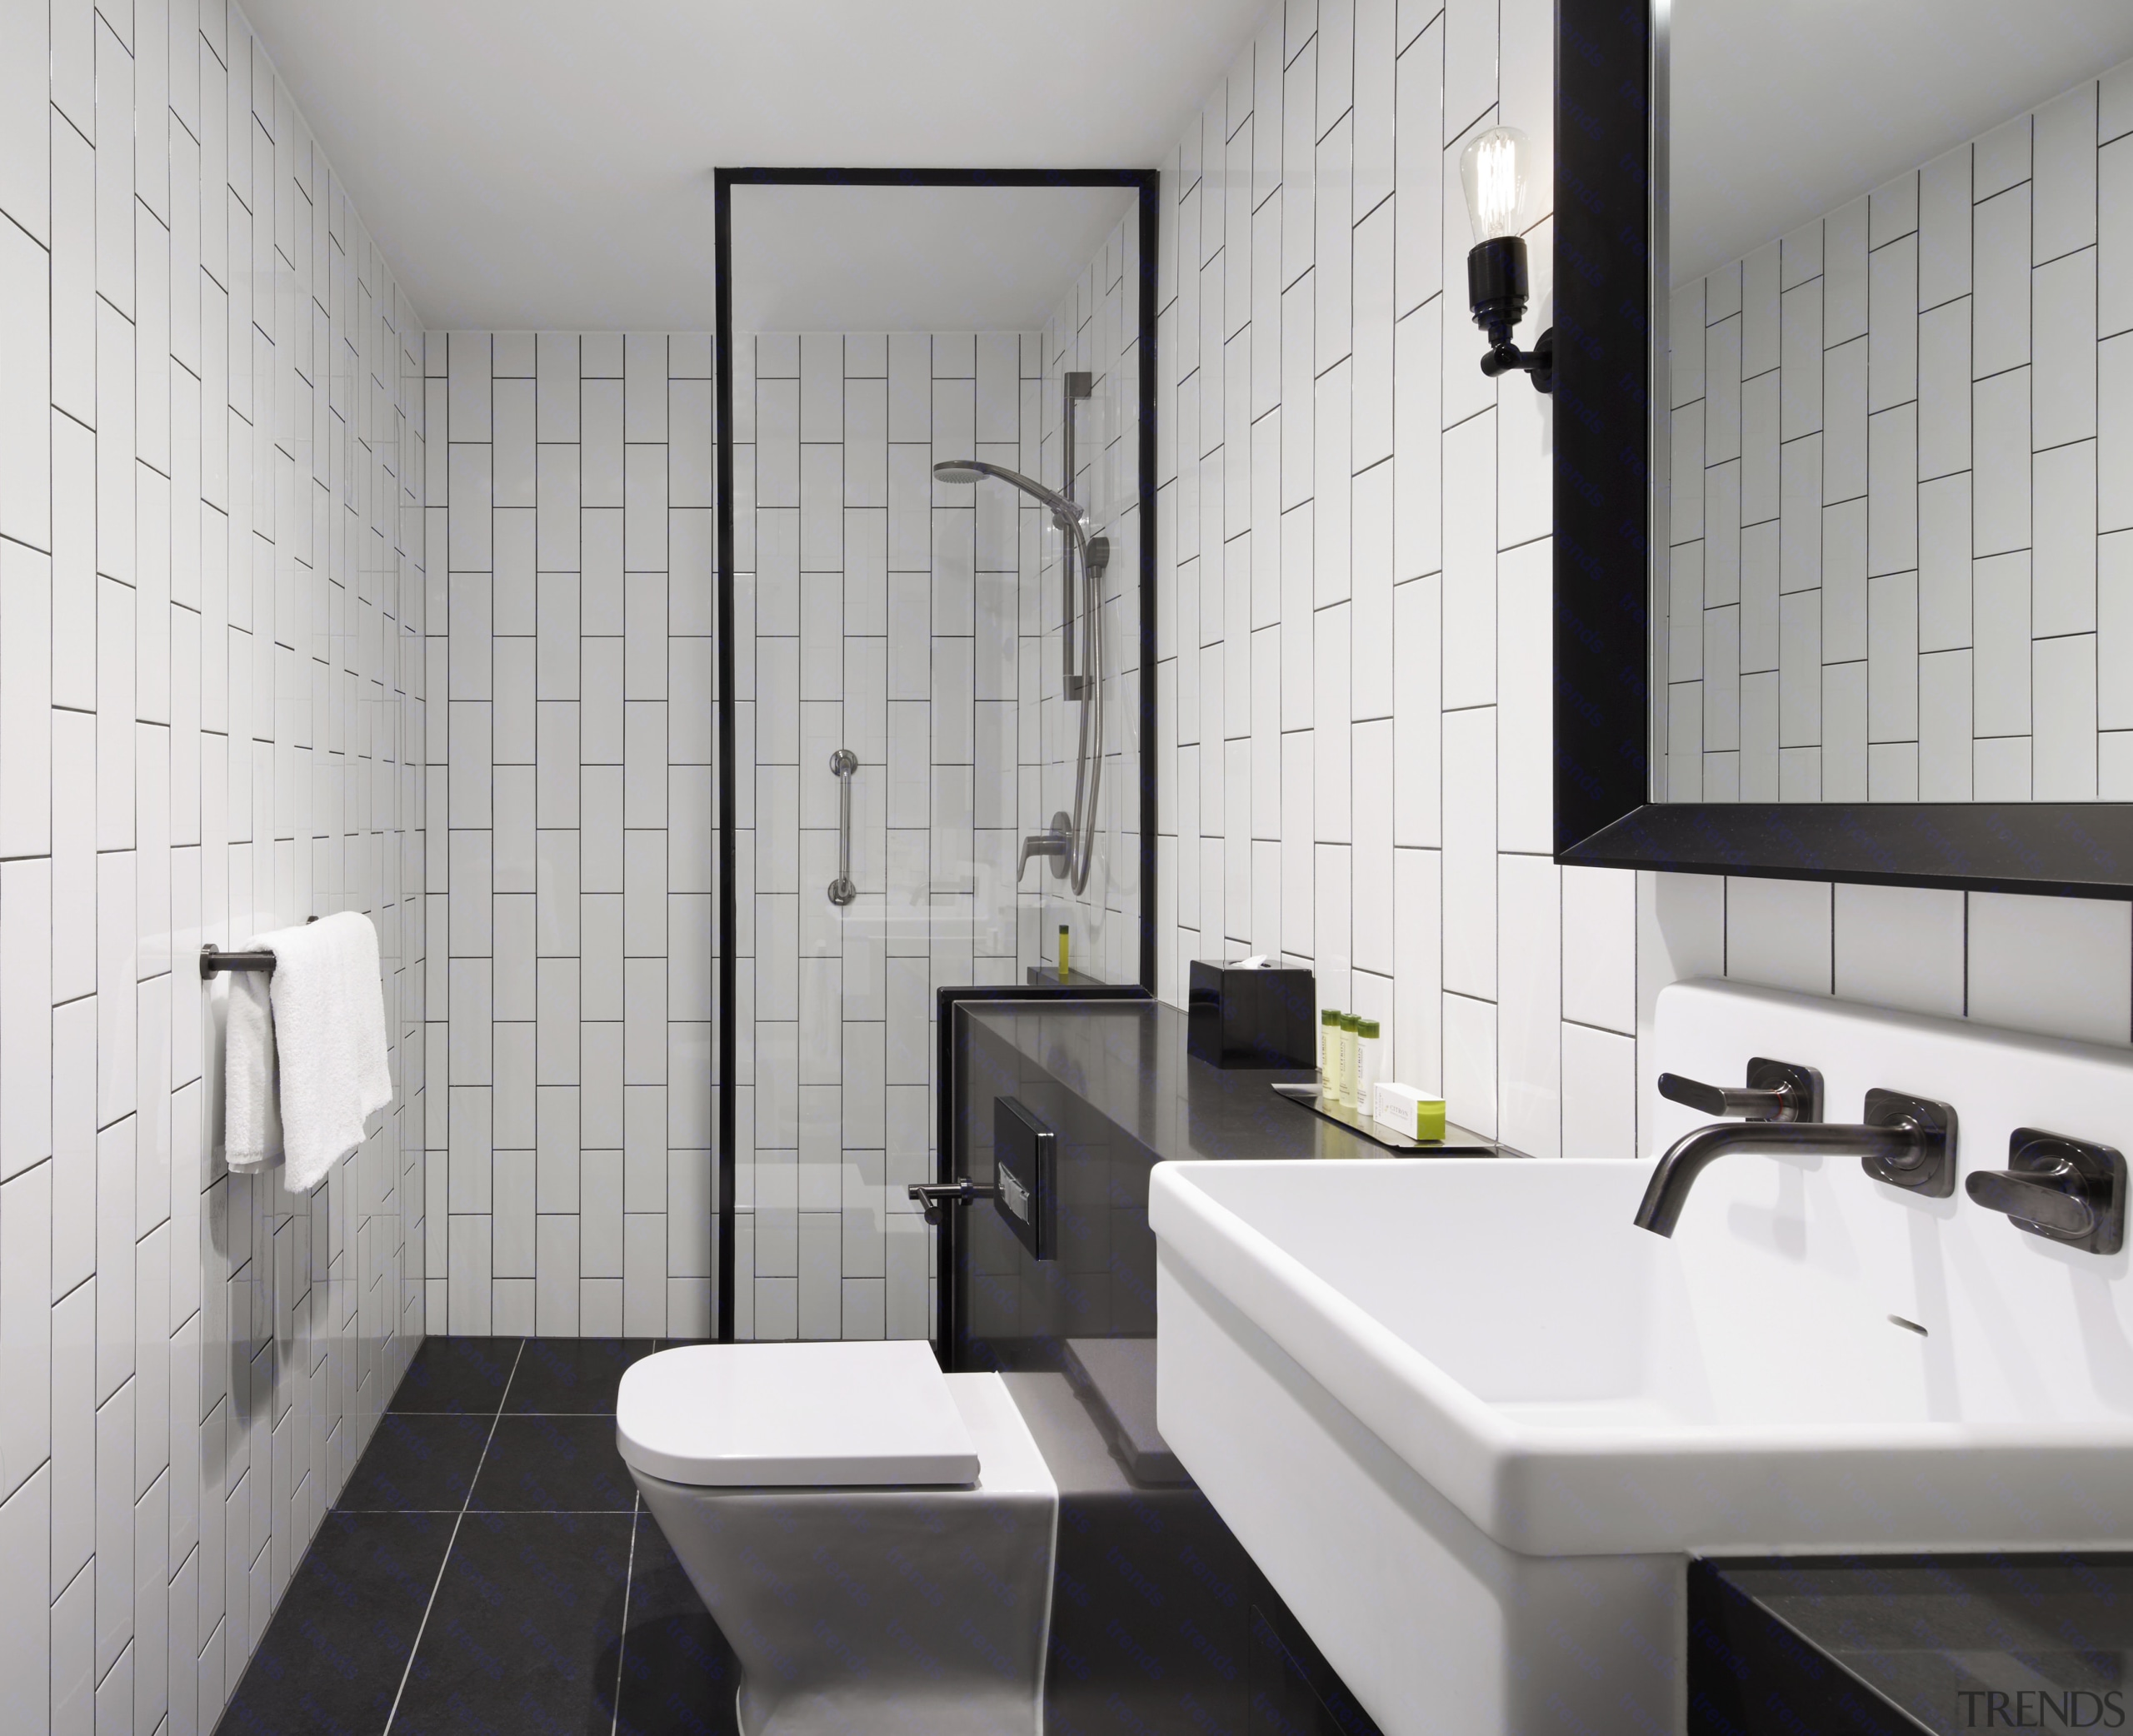 Guest rooms at the new DoubleTree by Hilton bathroom, floor, interior design, plumbing fixture, product design, room, sink, tile, wall, gray